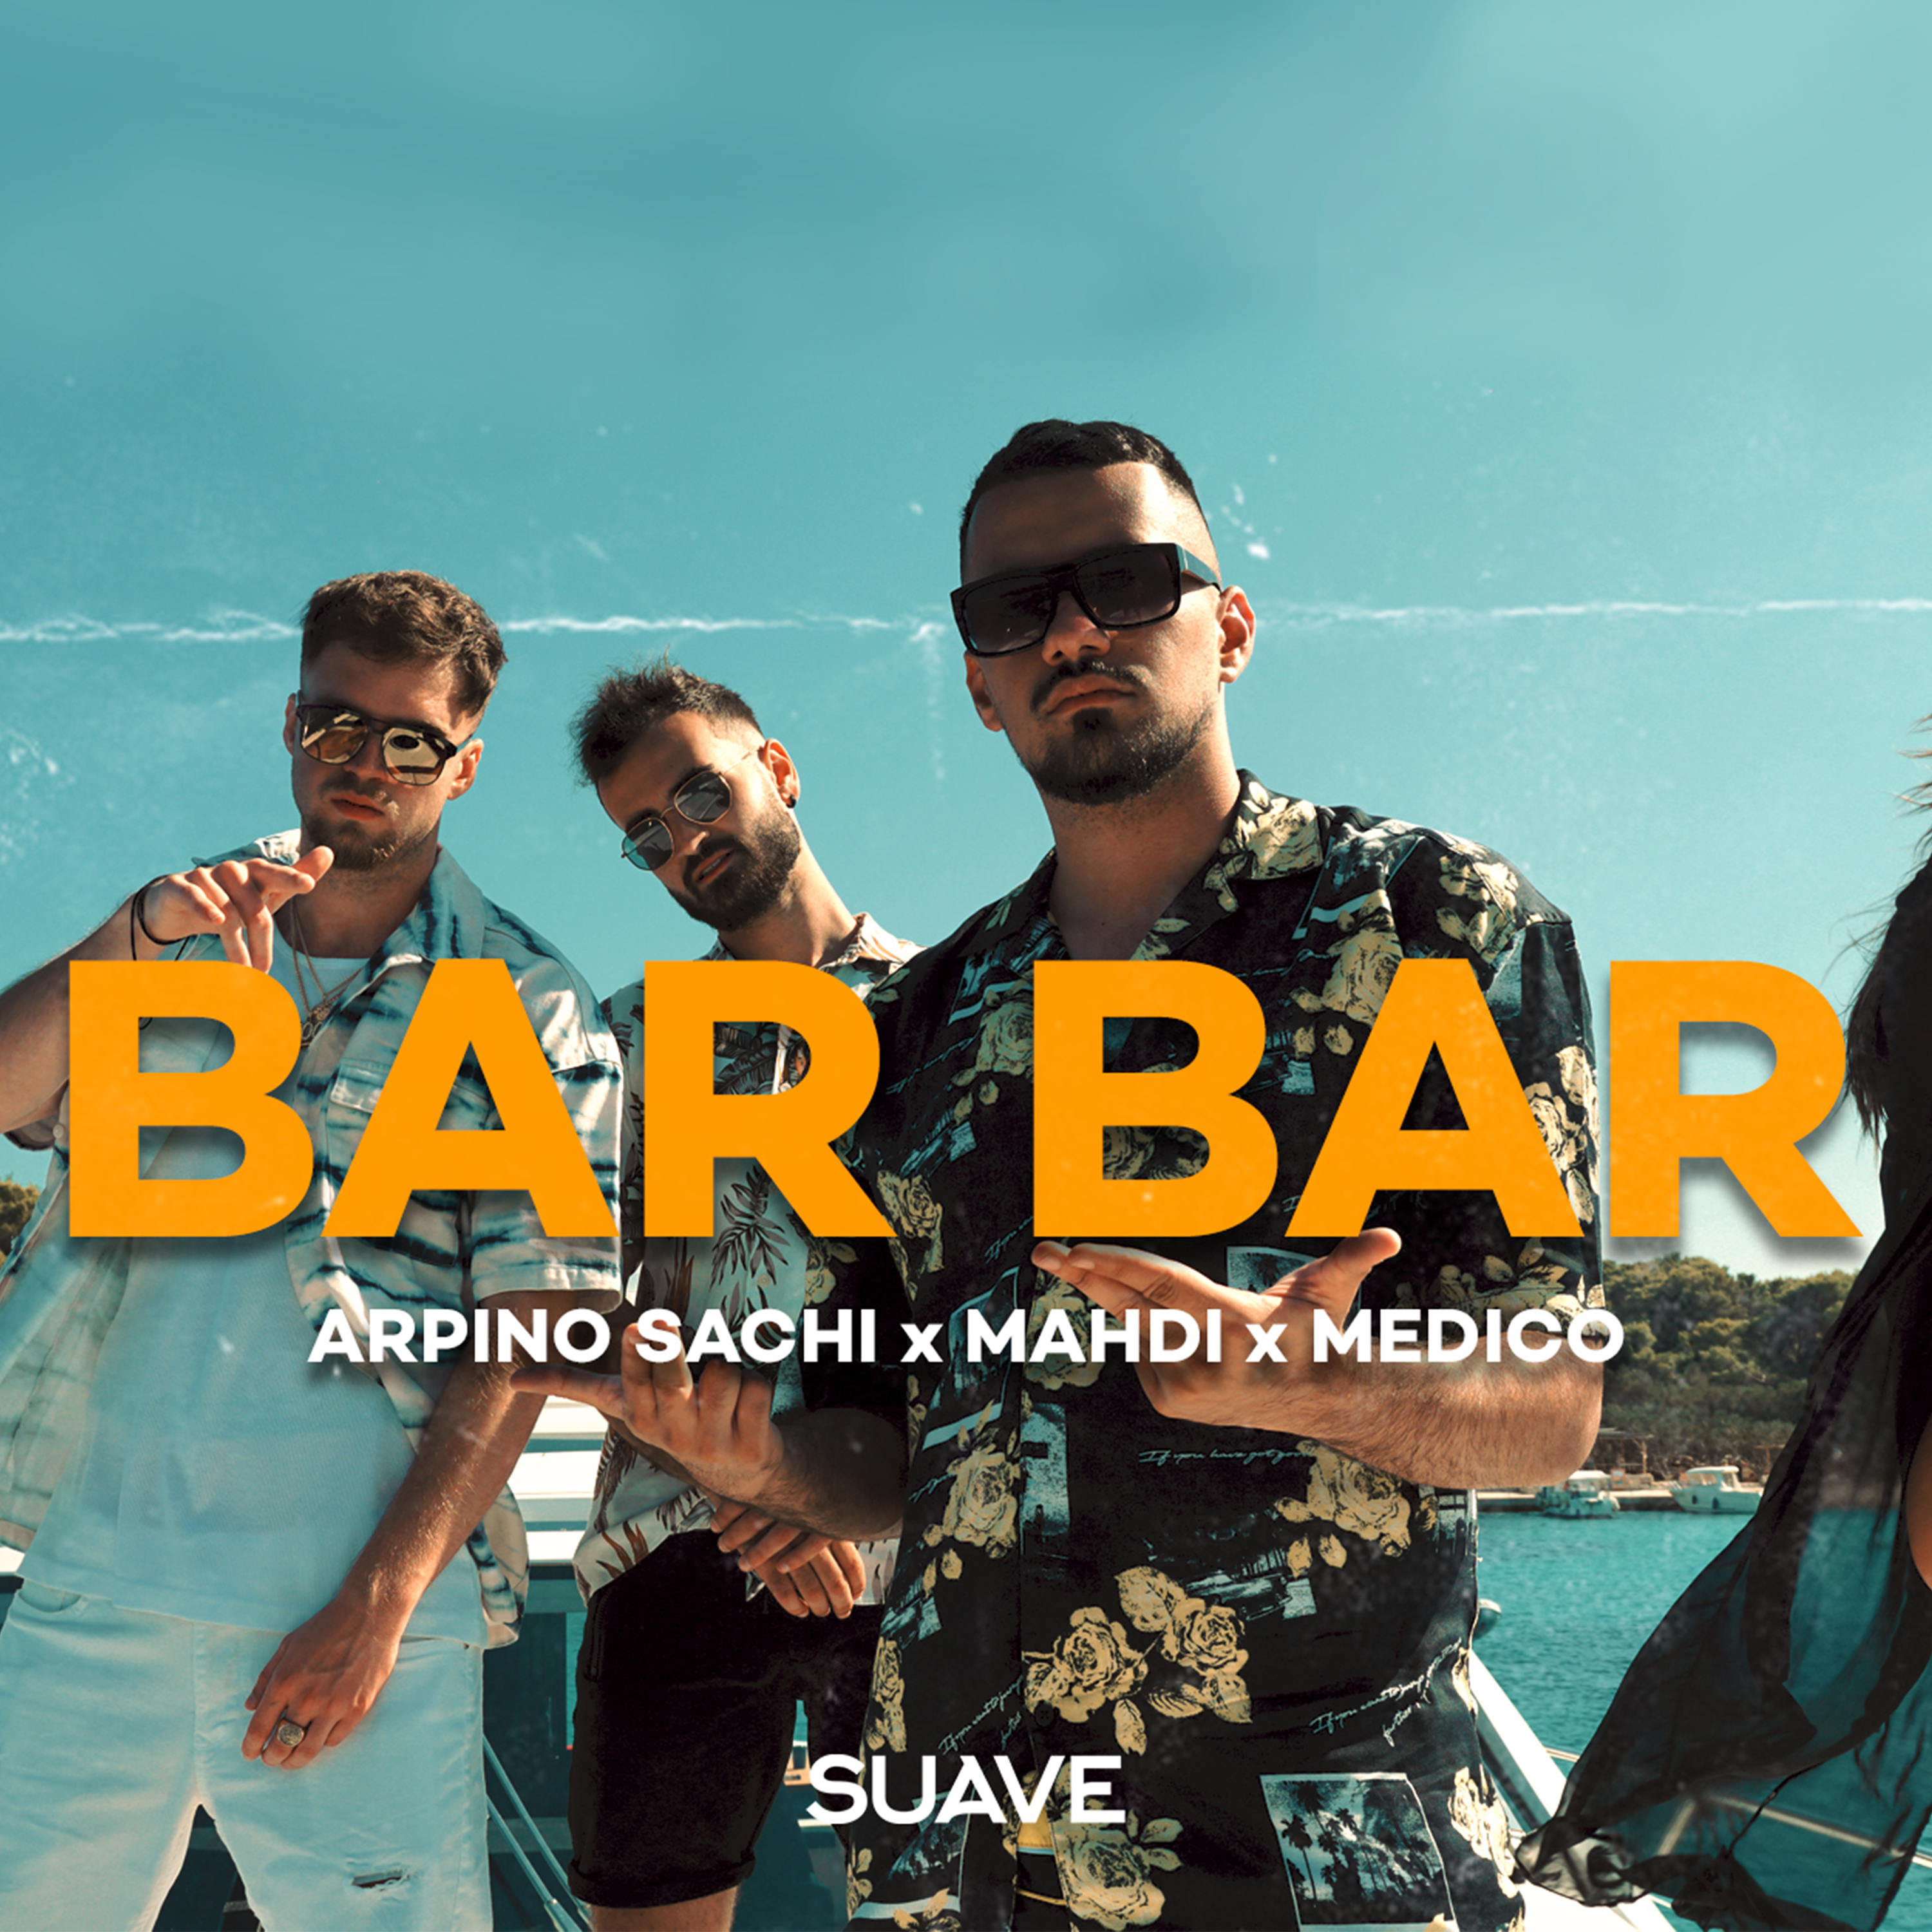 Arpino Sachi & Mahdi & Medico - Bar Bar - Listen on Spotify, Deezer, YouTube, Google Play Music and Buy on Amazon, iTunes Google Play | EMDC Network